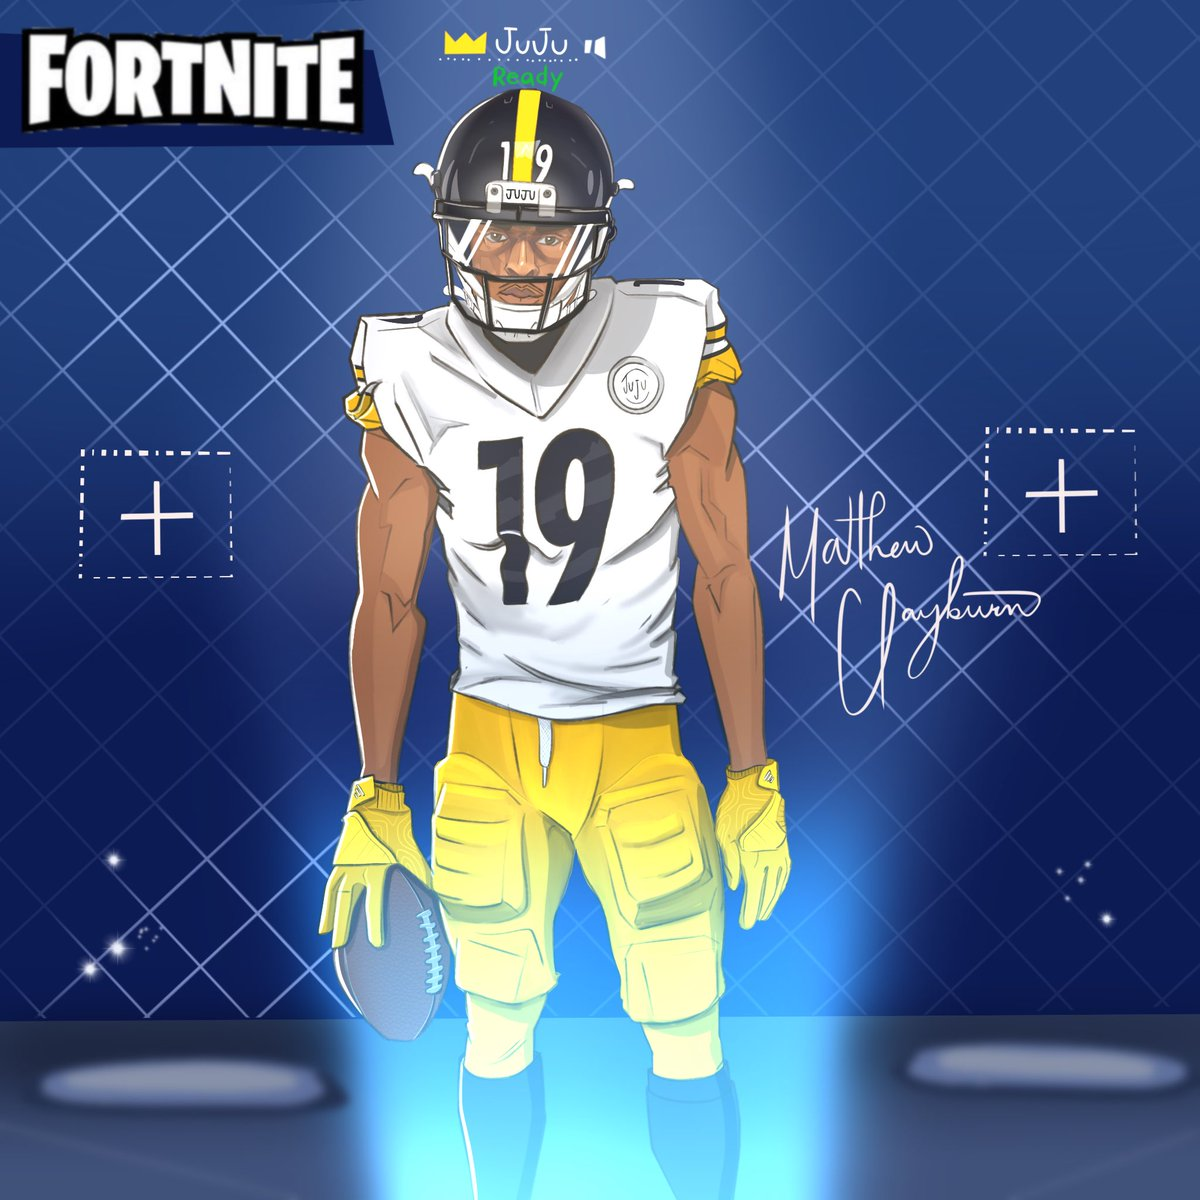 If Steelers Players Were Fortnite Weapons - Steel City Blitz